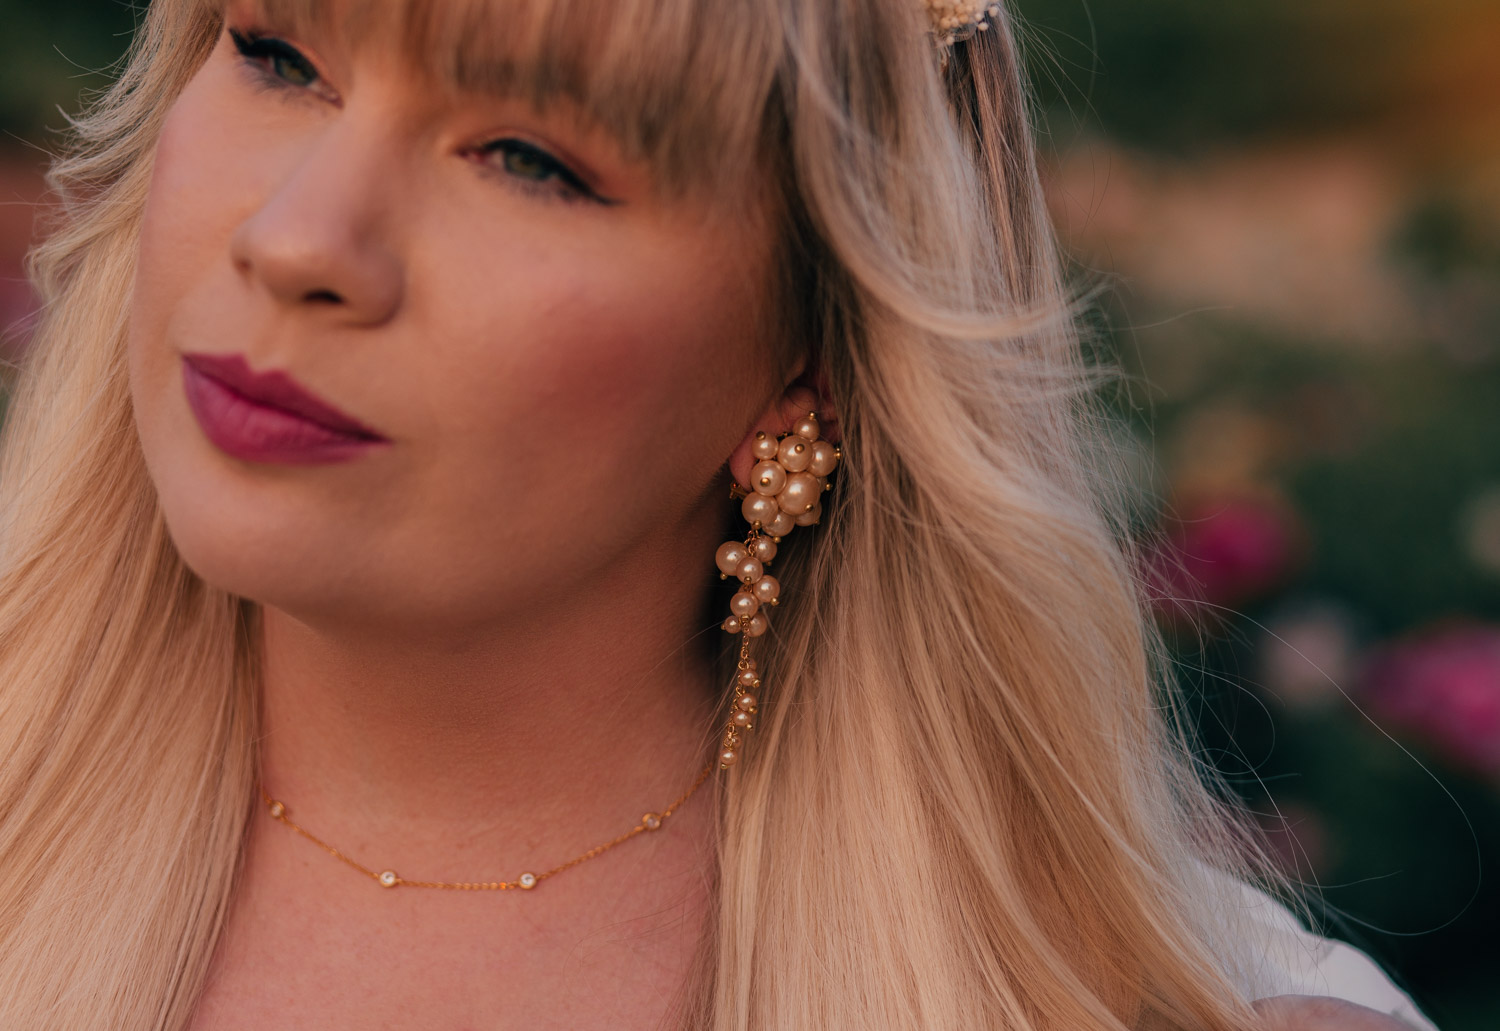 Feminine Fashion Blogger Elizabeth Hugen of Lizzie in Lace shares a cottagecore outfit idea including this dainty gold necklace and pearl earrings